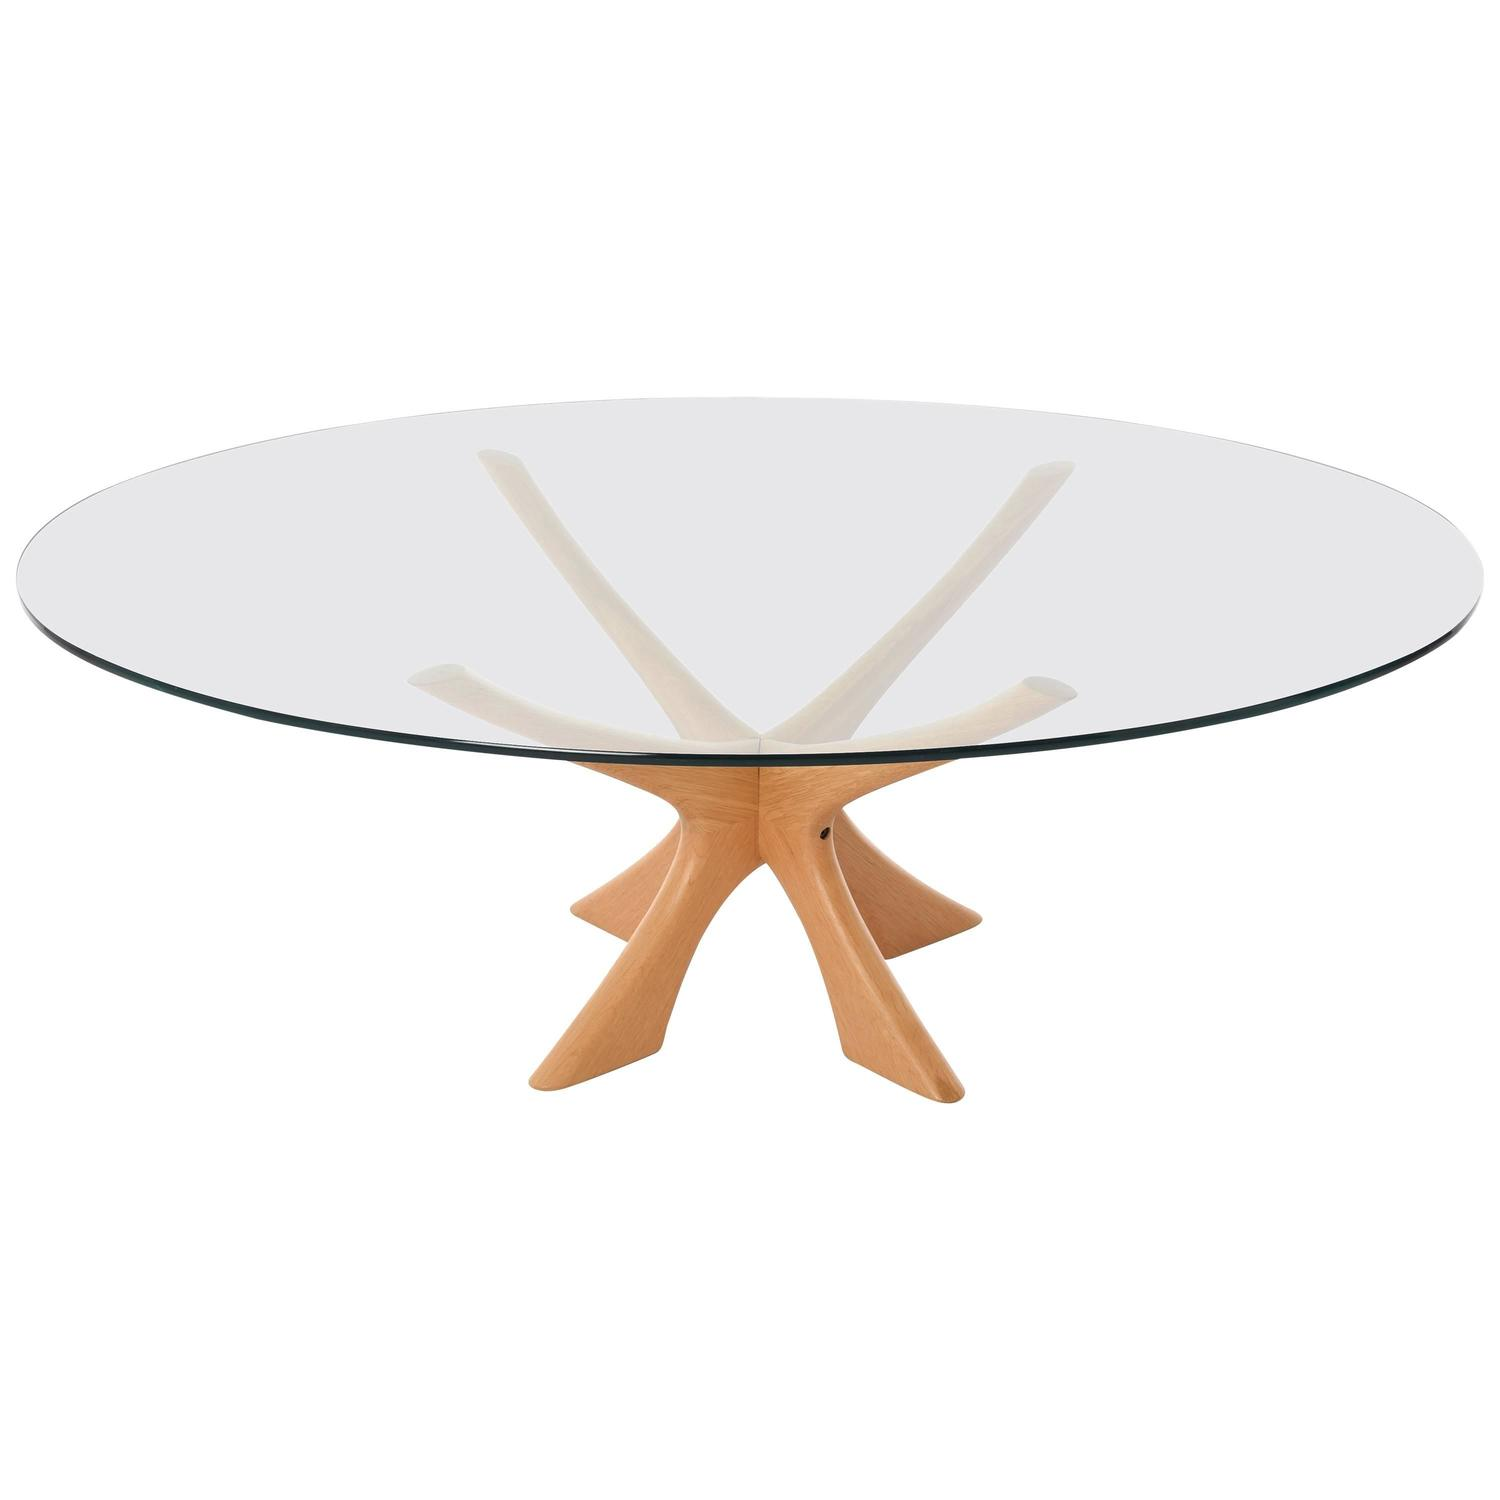 Danish Modern Glass-Top Coffee Table For Sale At 1stdibs